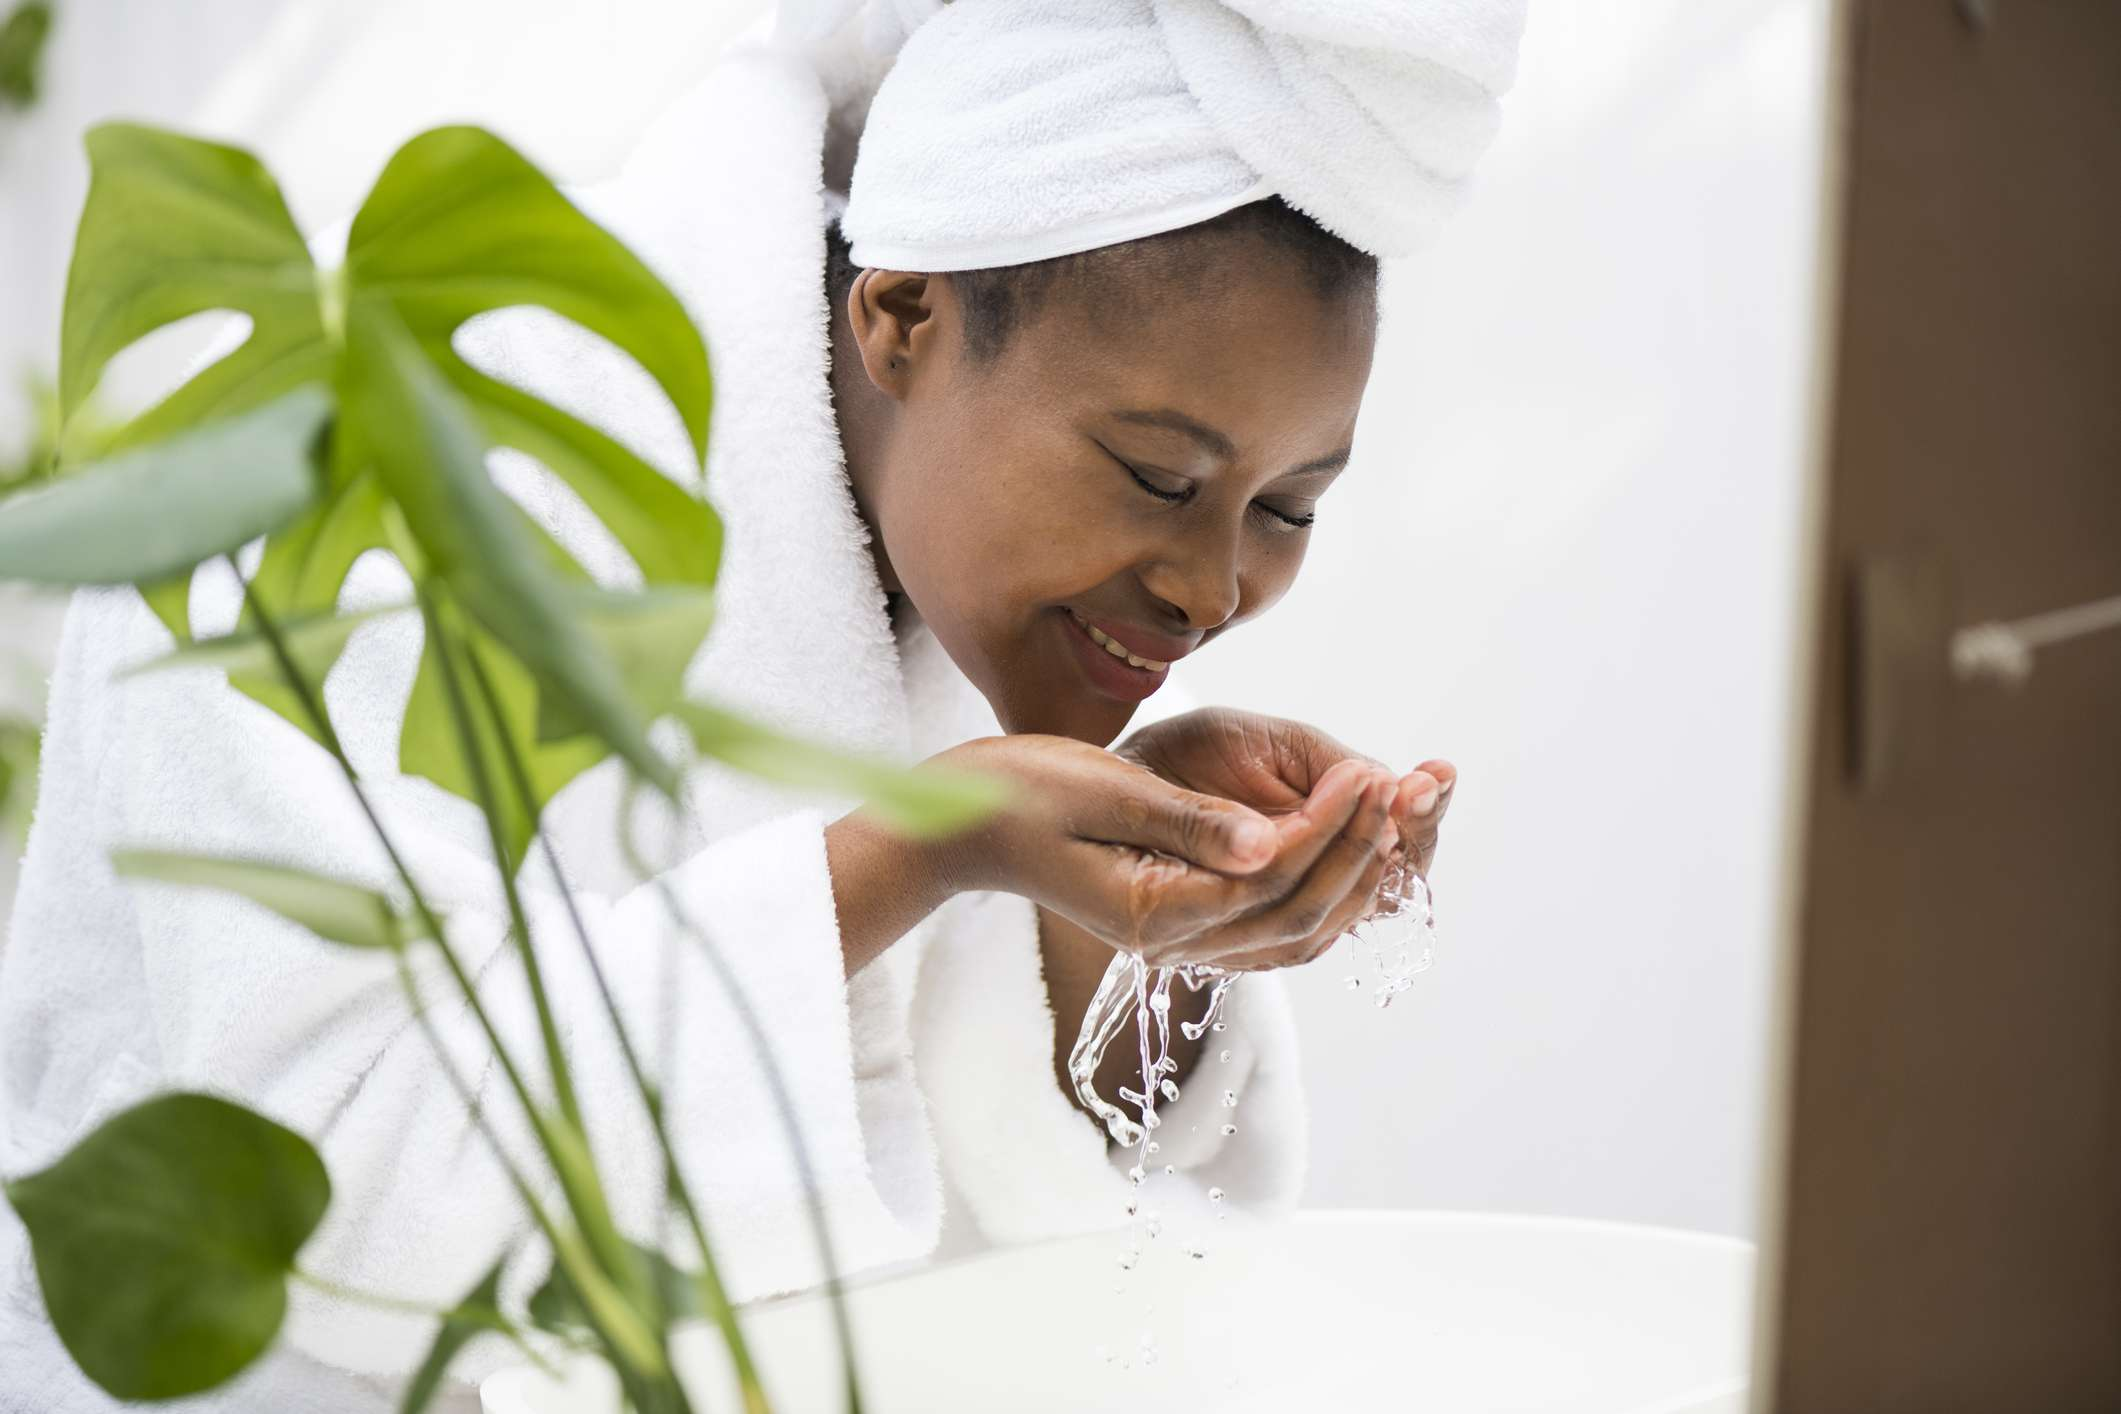 A black woman rinsing her face with water.